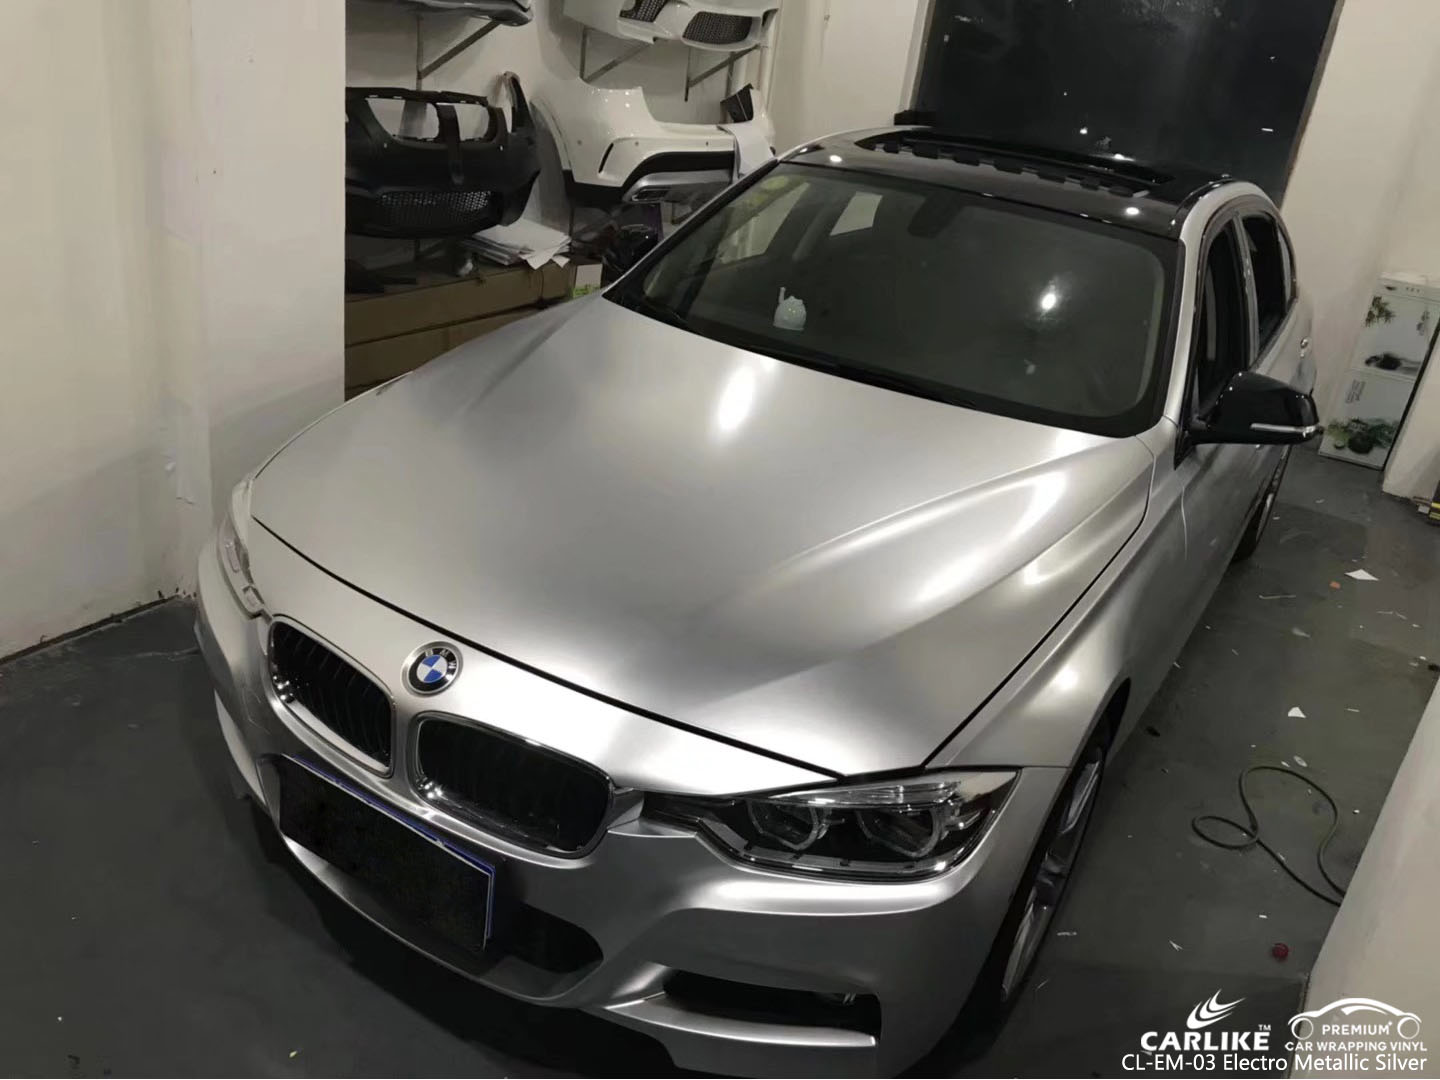 CARLIKE CL-EM-03 SILVER MATTE ELECTRO METALLIC VINYL FOR BMW